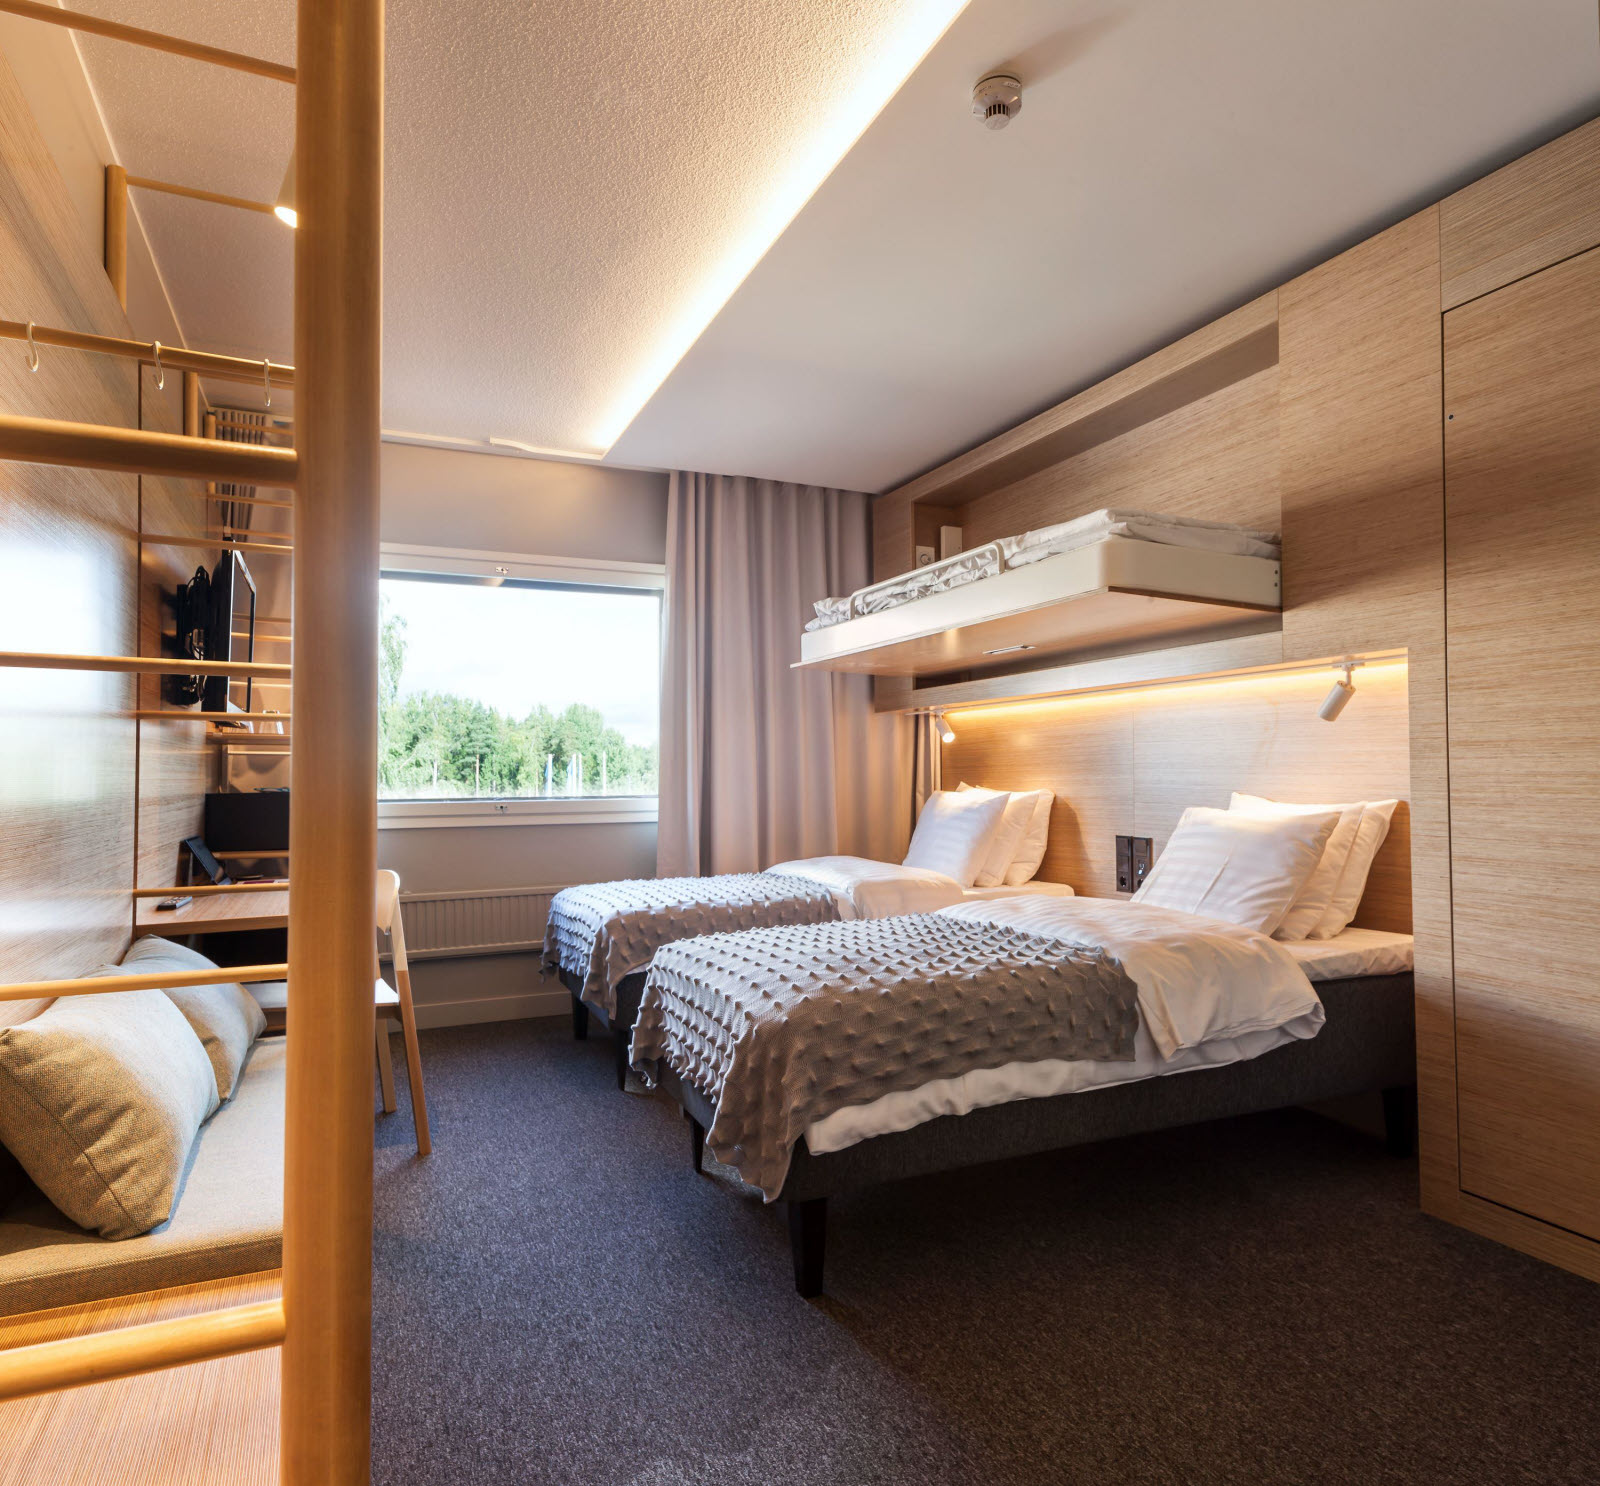 Standard room with extra bed